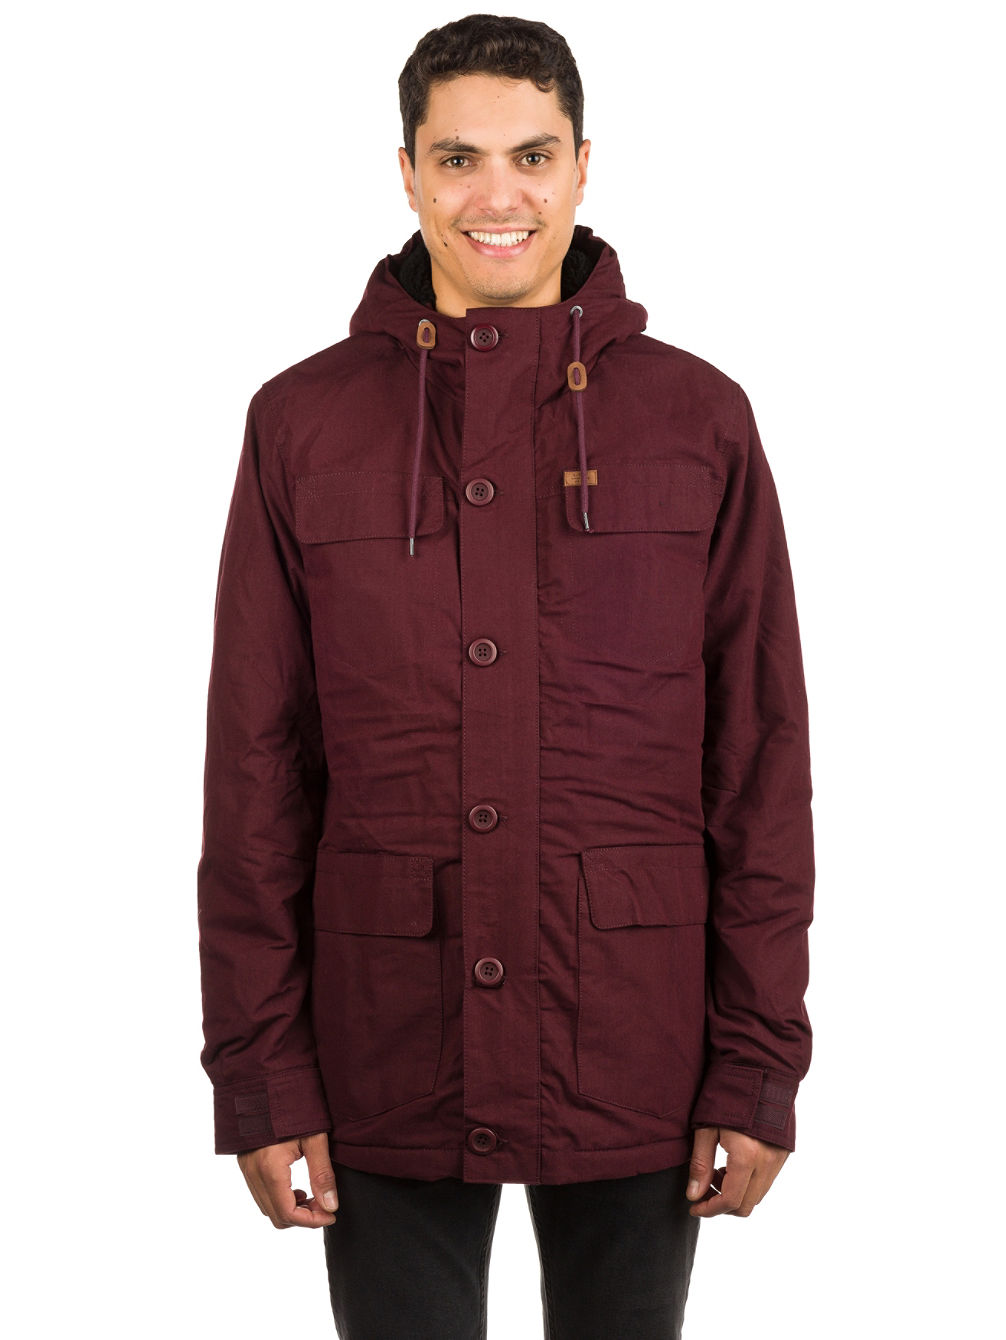 Goodstock Thermal Parka Jacket